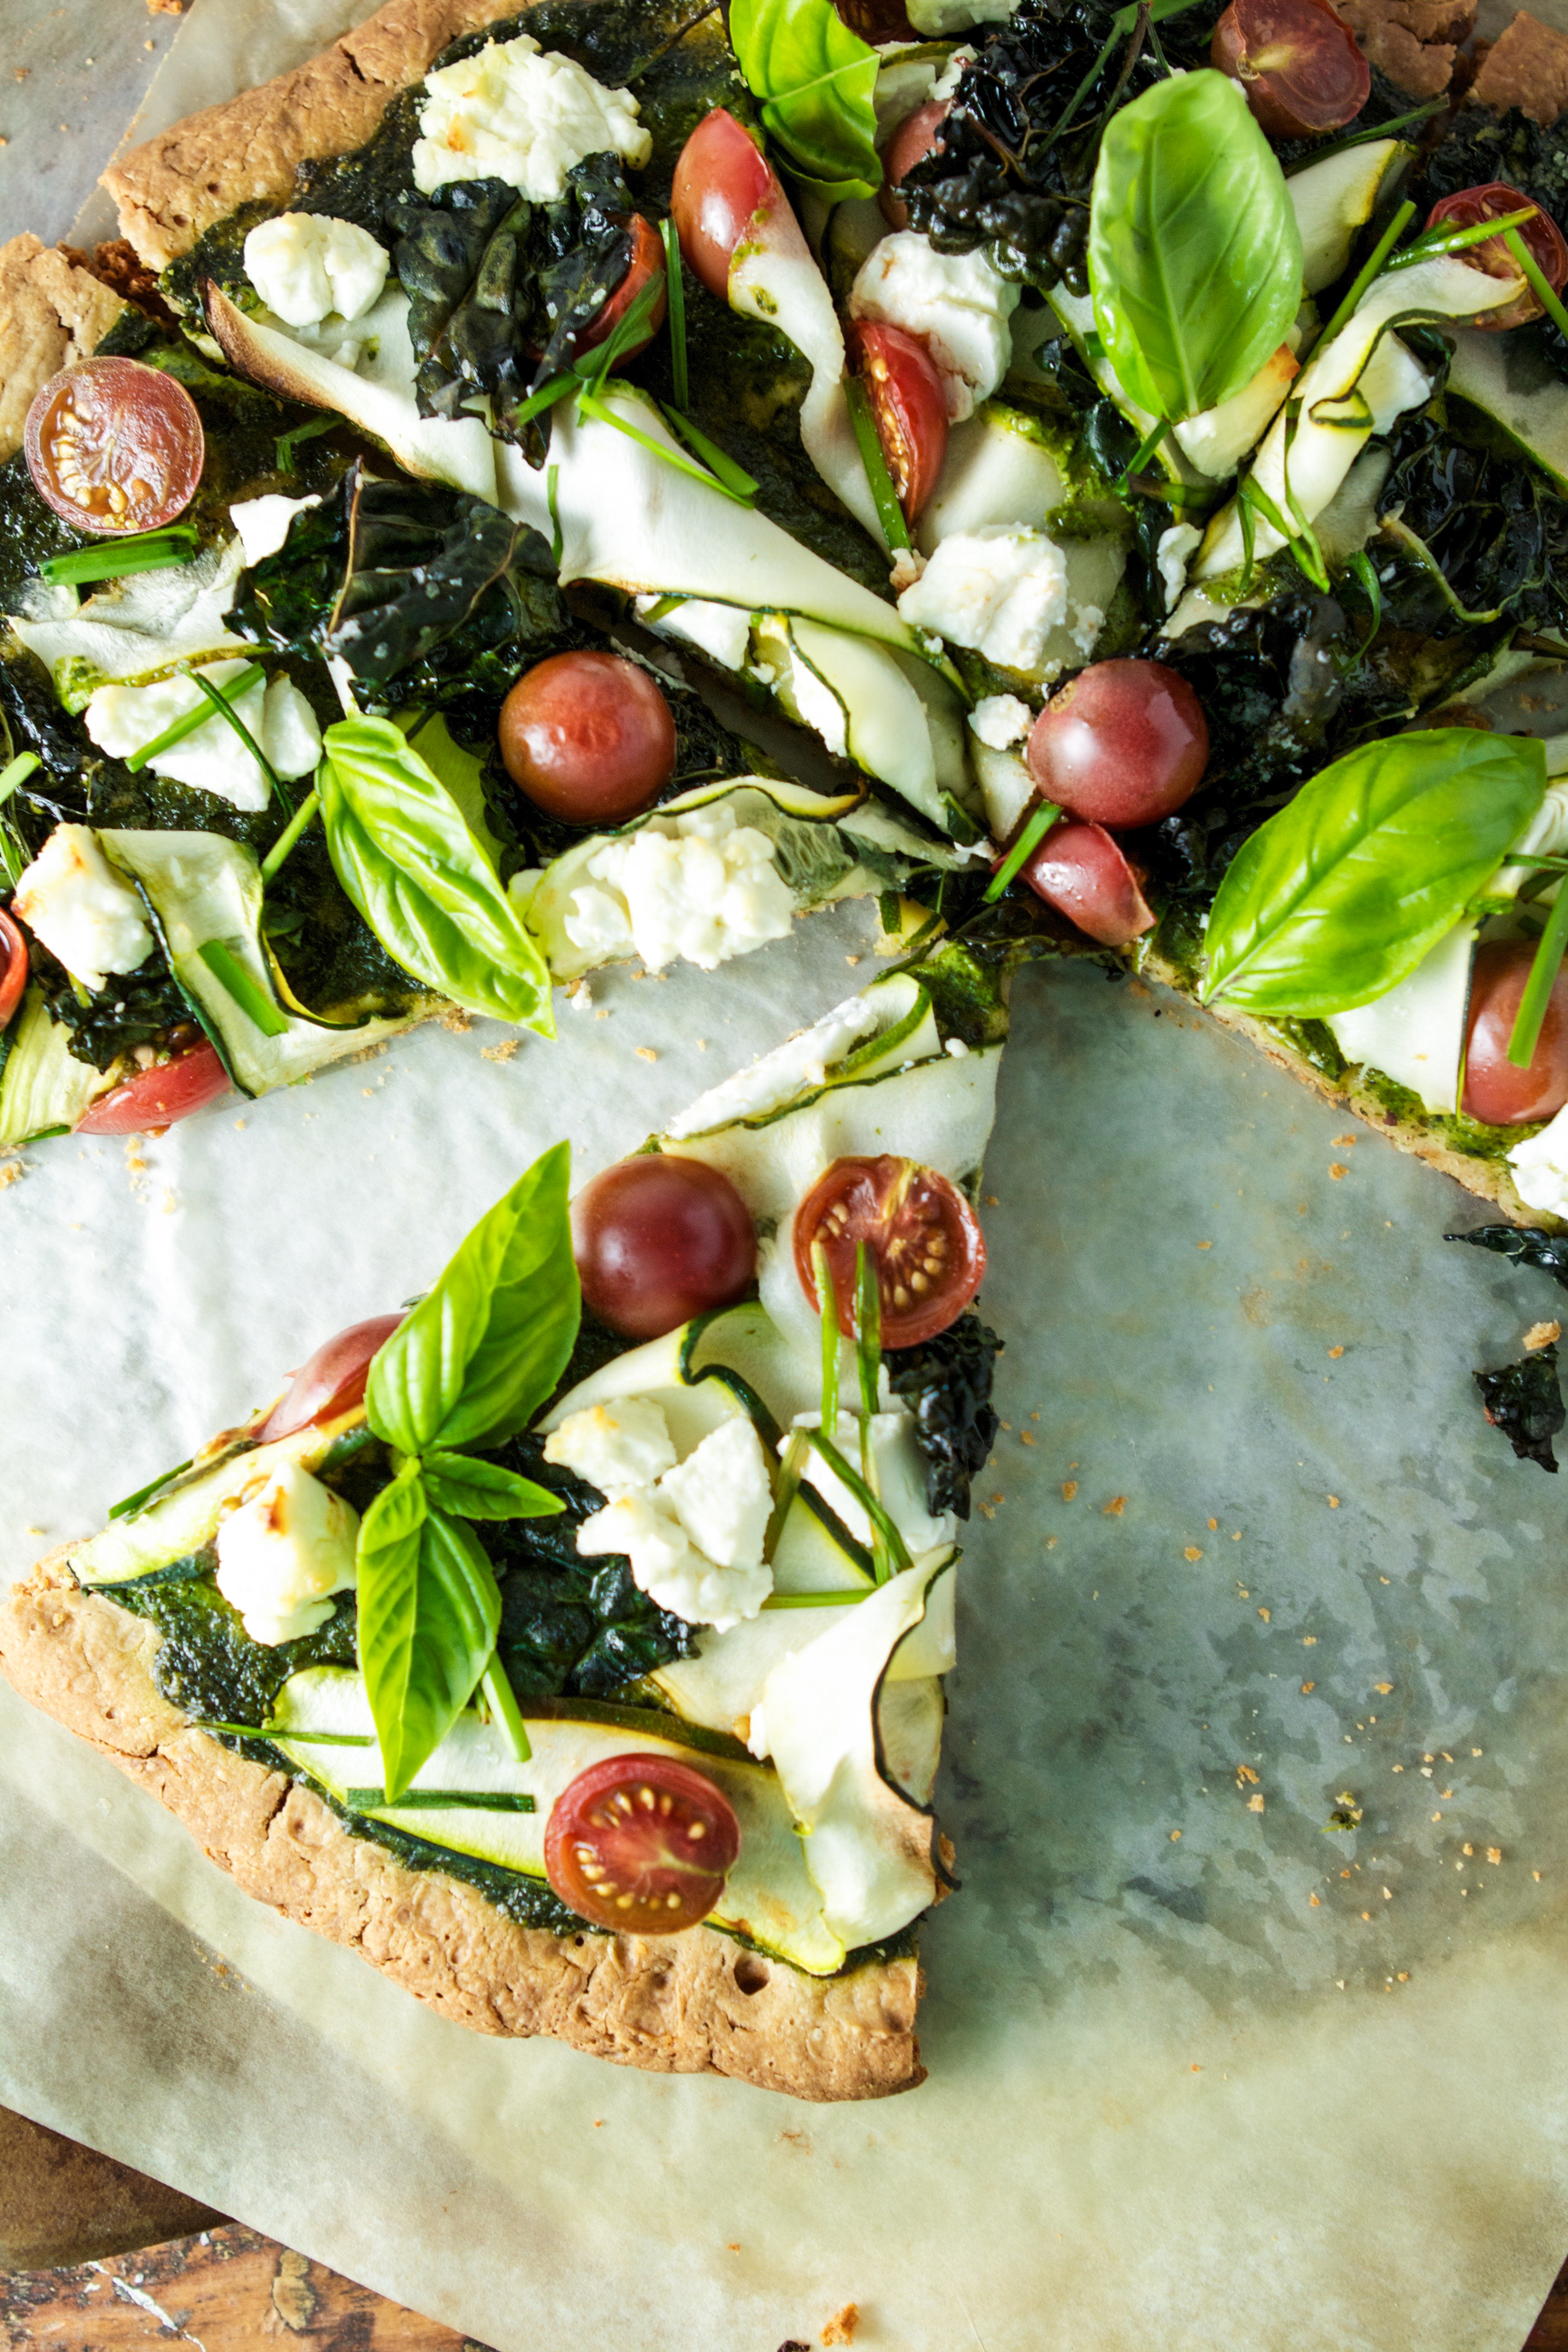 Photograph of a green goddess pizza from overhead | Zestful Kitchen